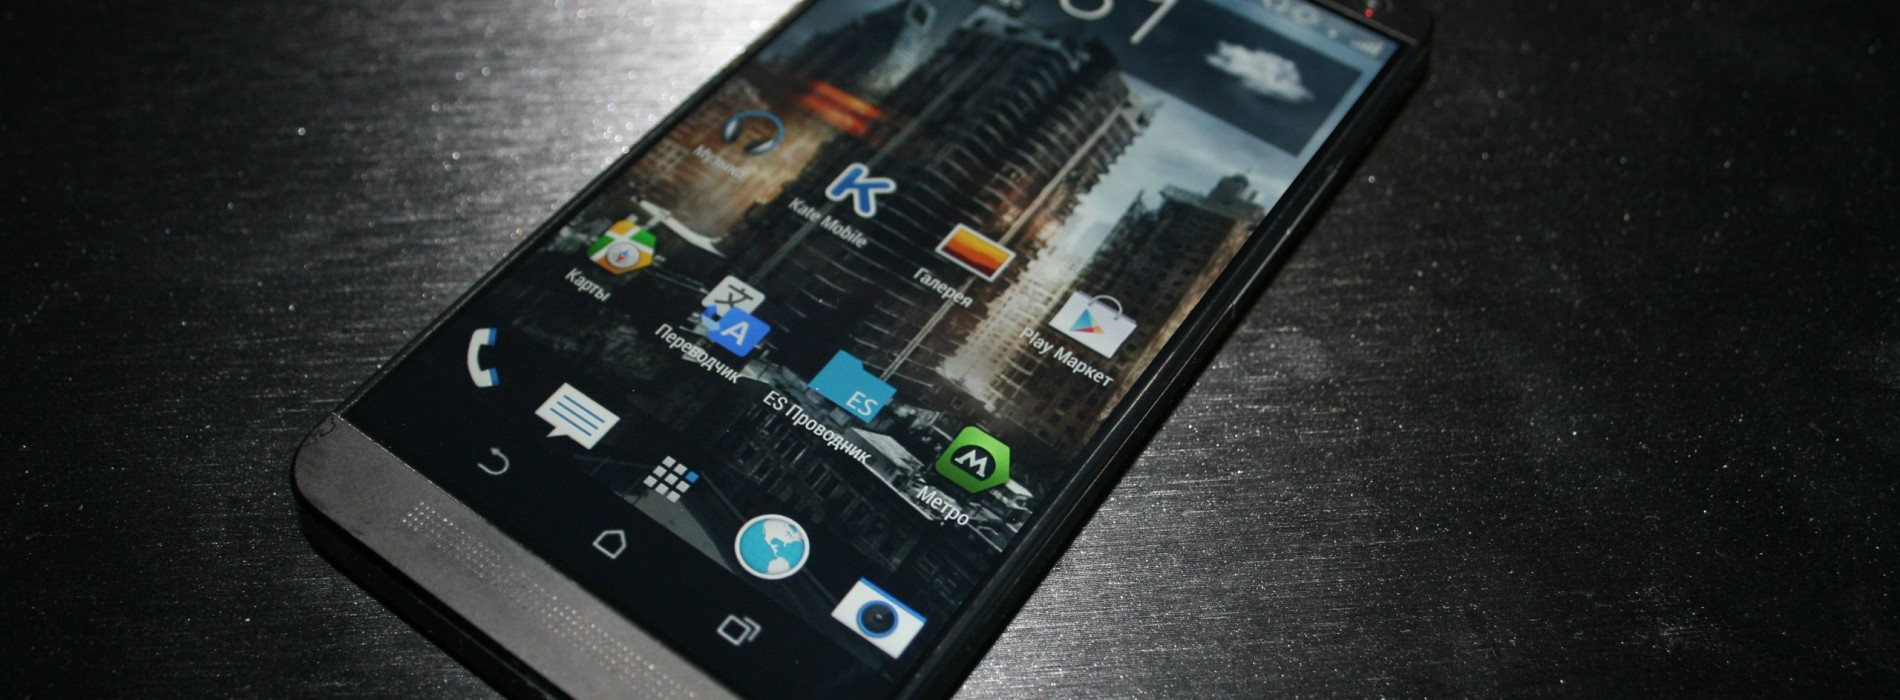 What we expect: All new HTC One